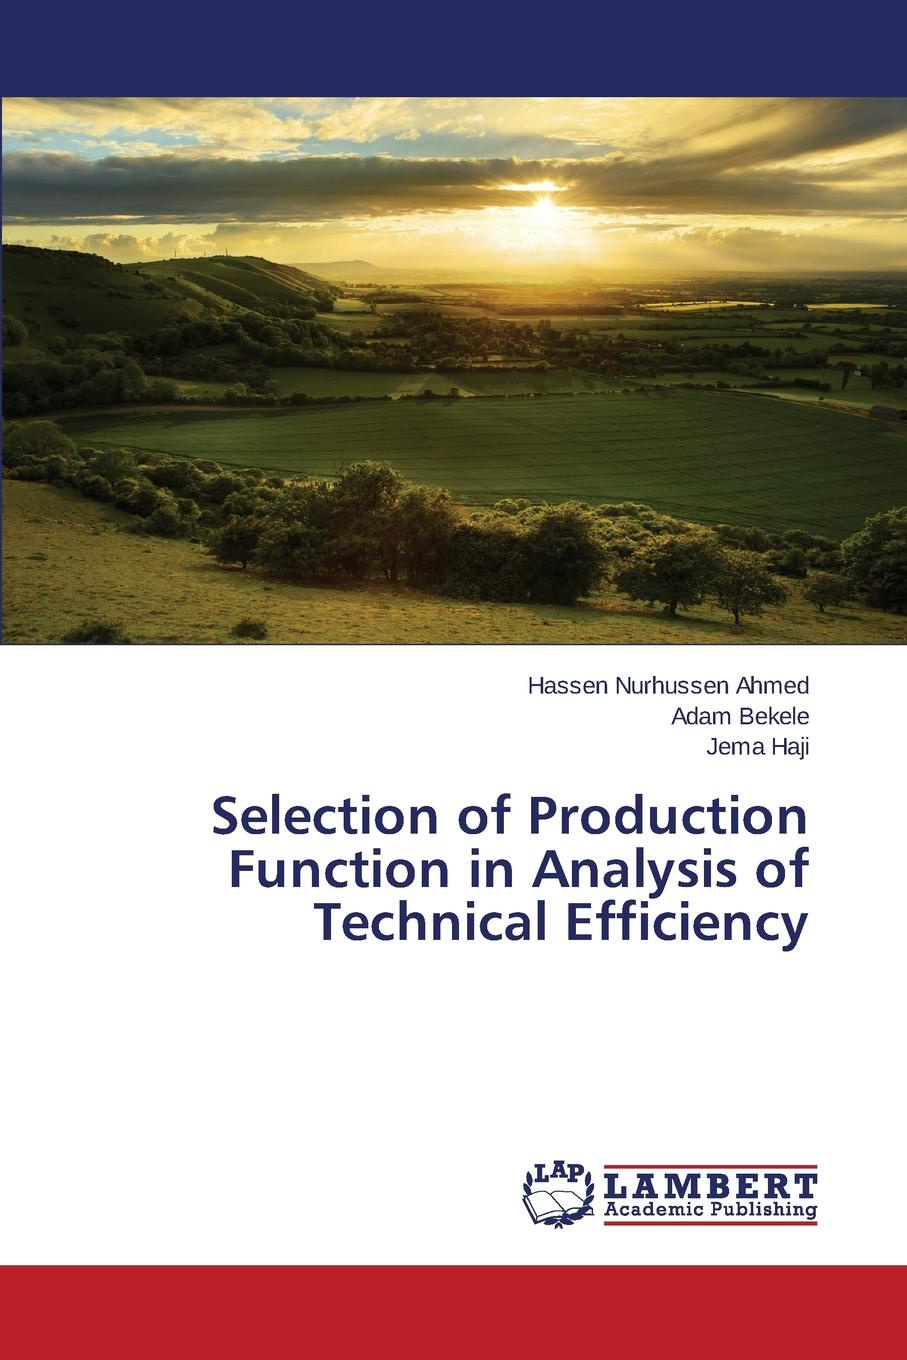 Ahmed Hassen Nurhussen, Bekele Adam, Haji Jema Selection of Production Function in Analysis of Technical Efficiency ishfaq ahmed and tehmina fiaz qazi mobile phone adoption a habit or necessity